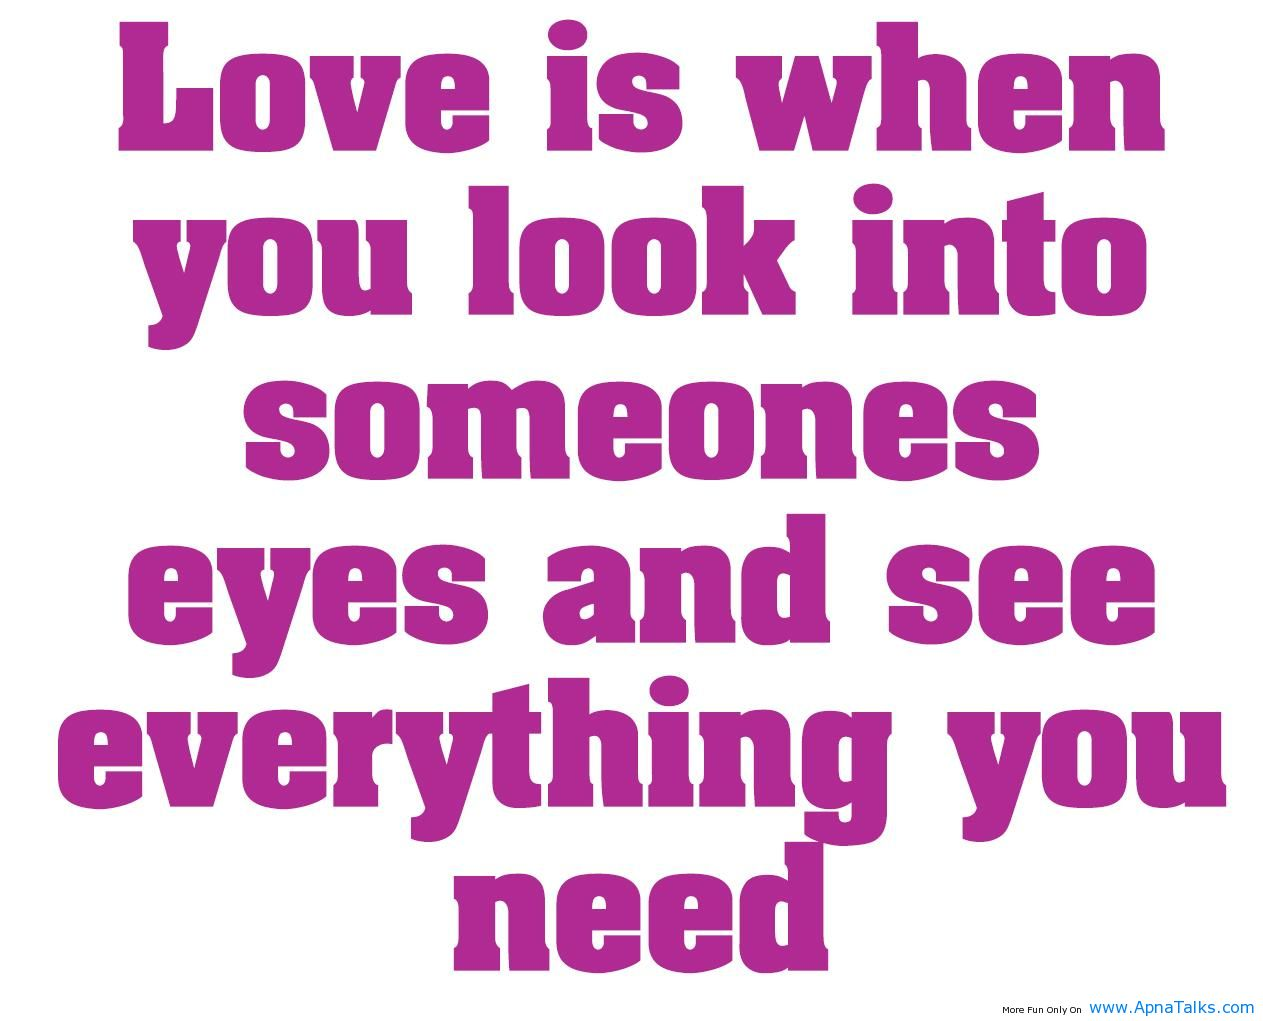 love, consummate love, empty love, romantic love, etc. Love quotes ...